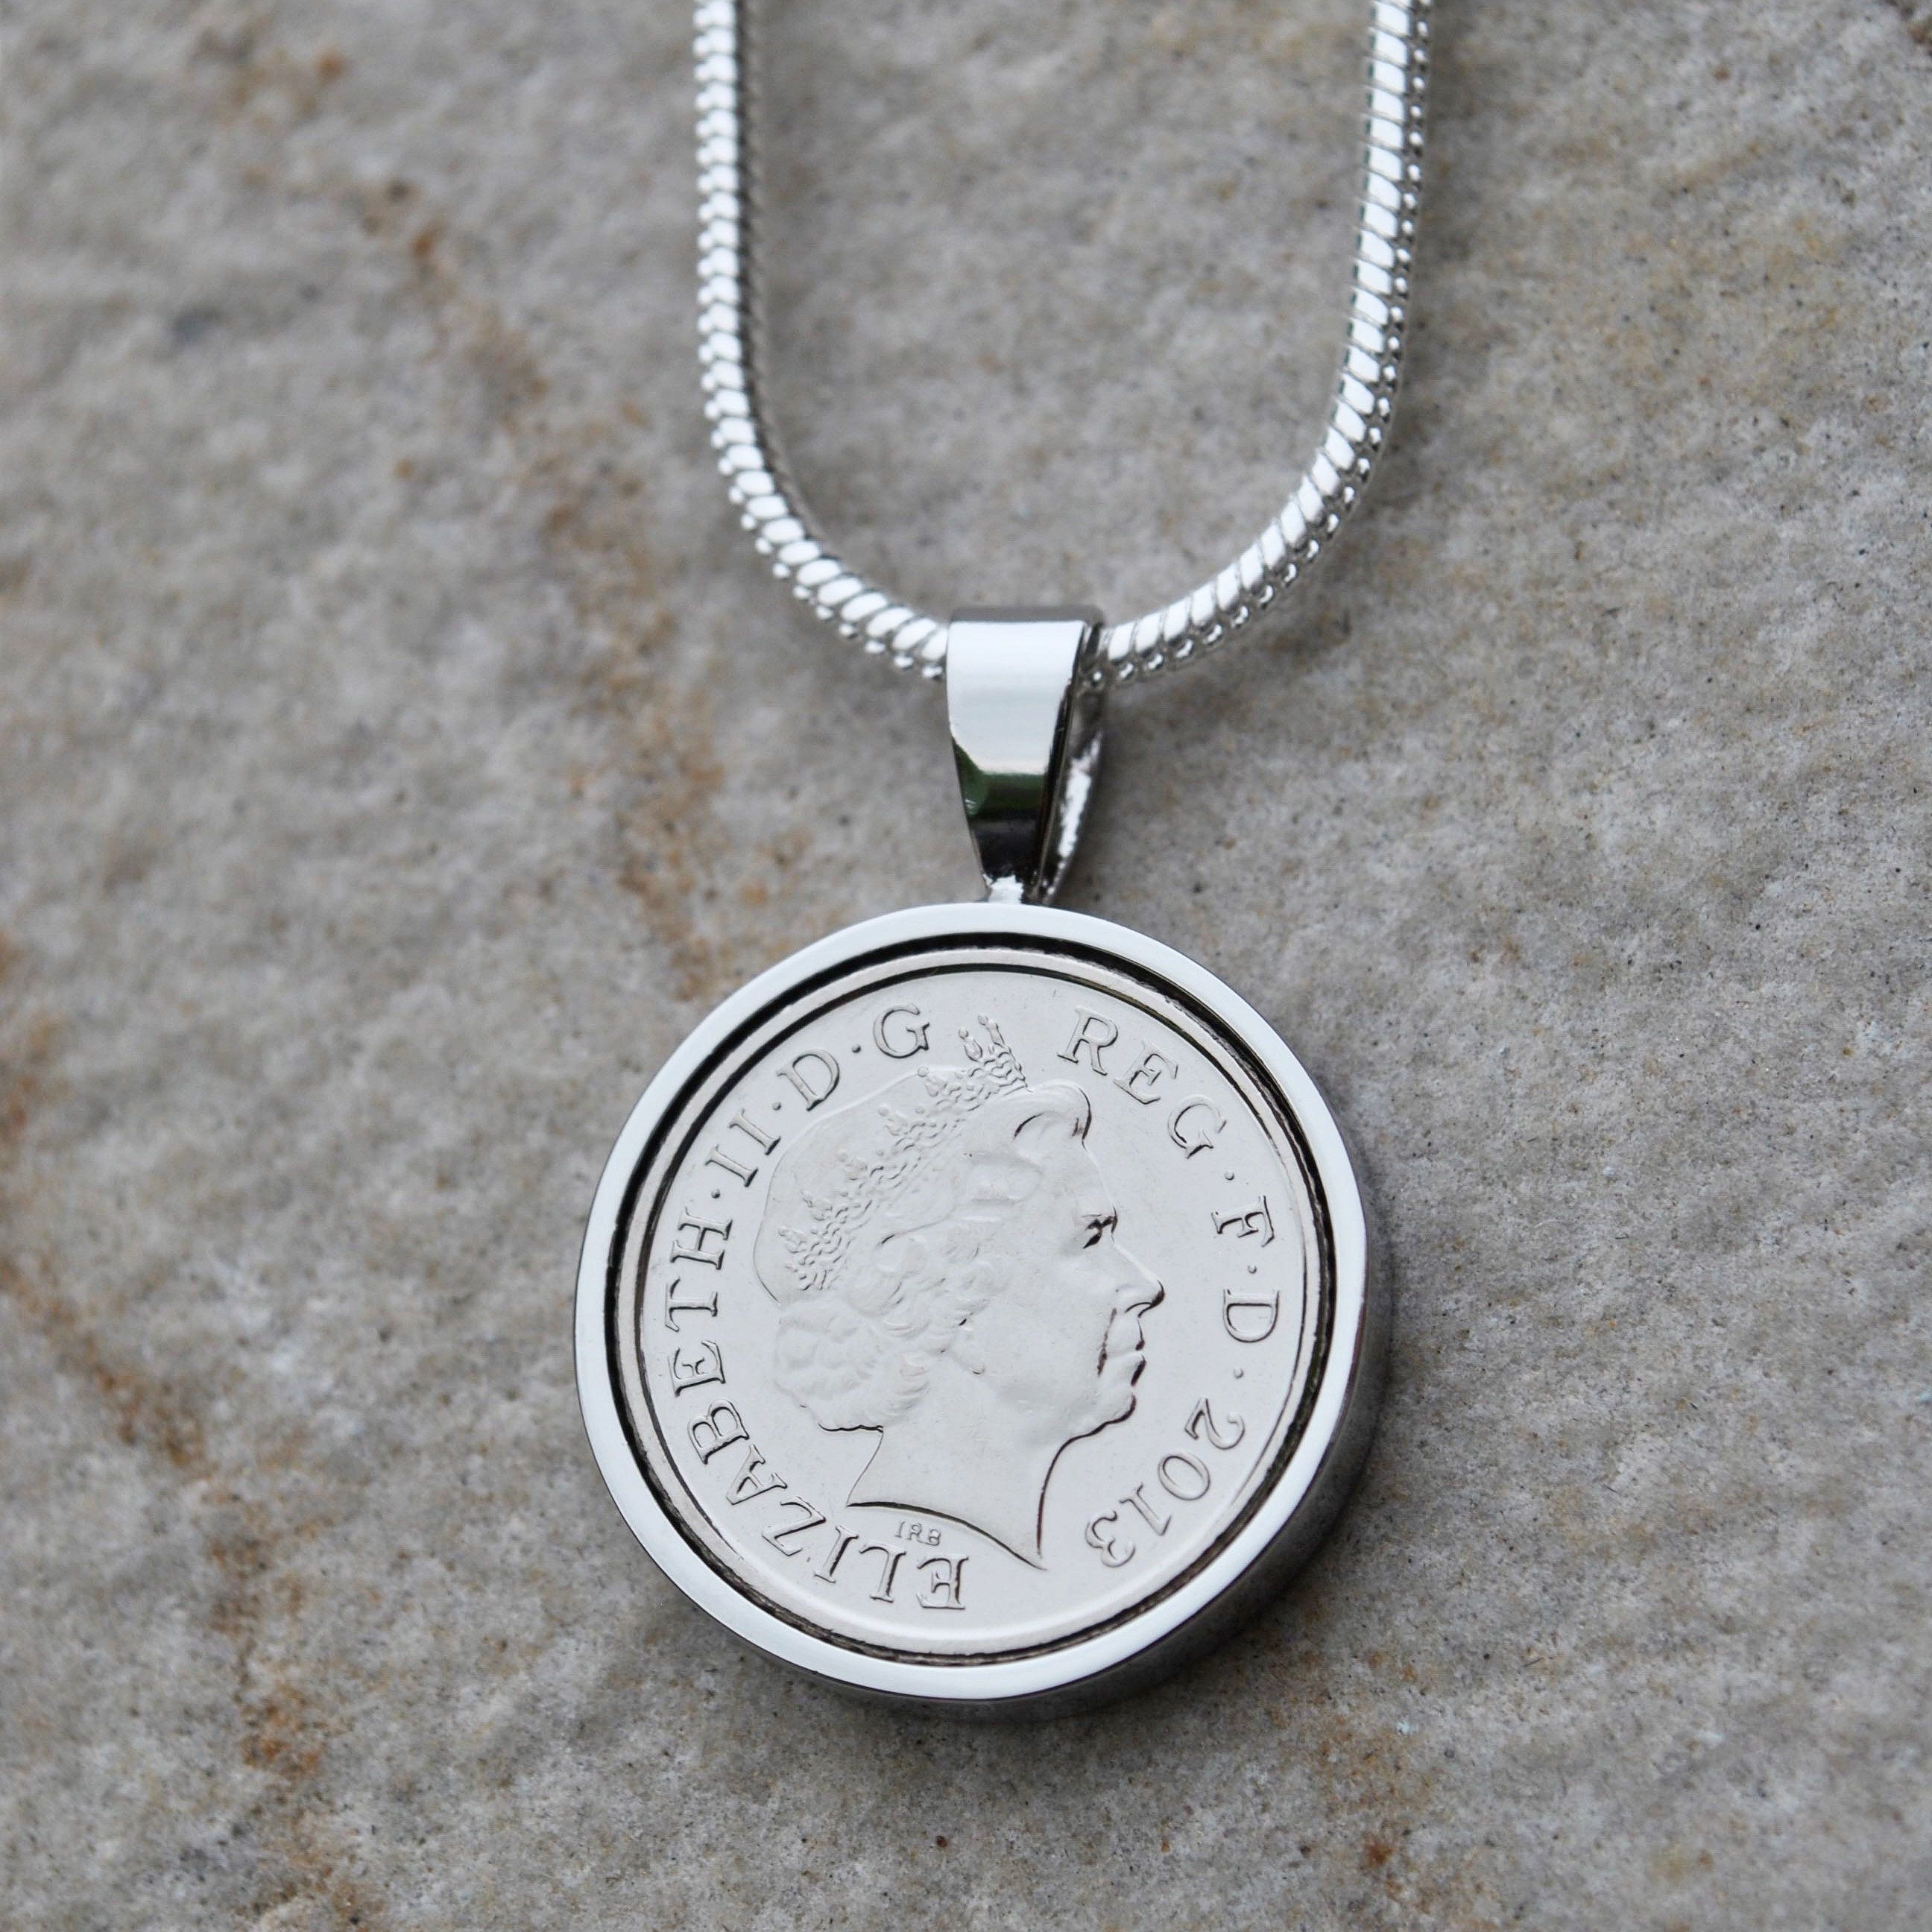 2014 5th anniversary necklace 2014 necklace 5th